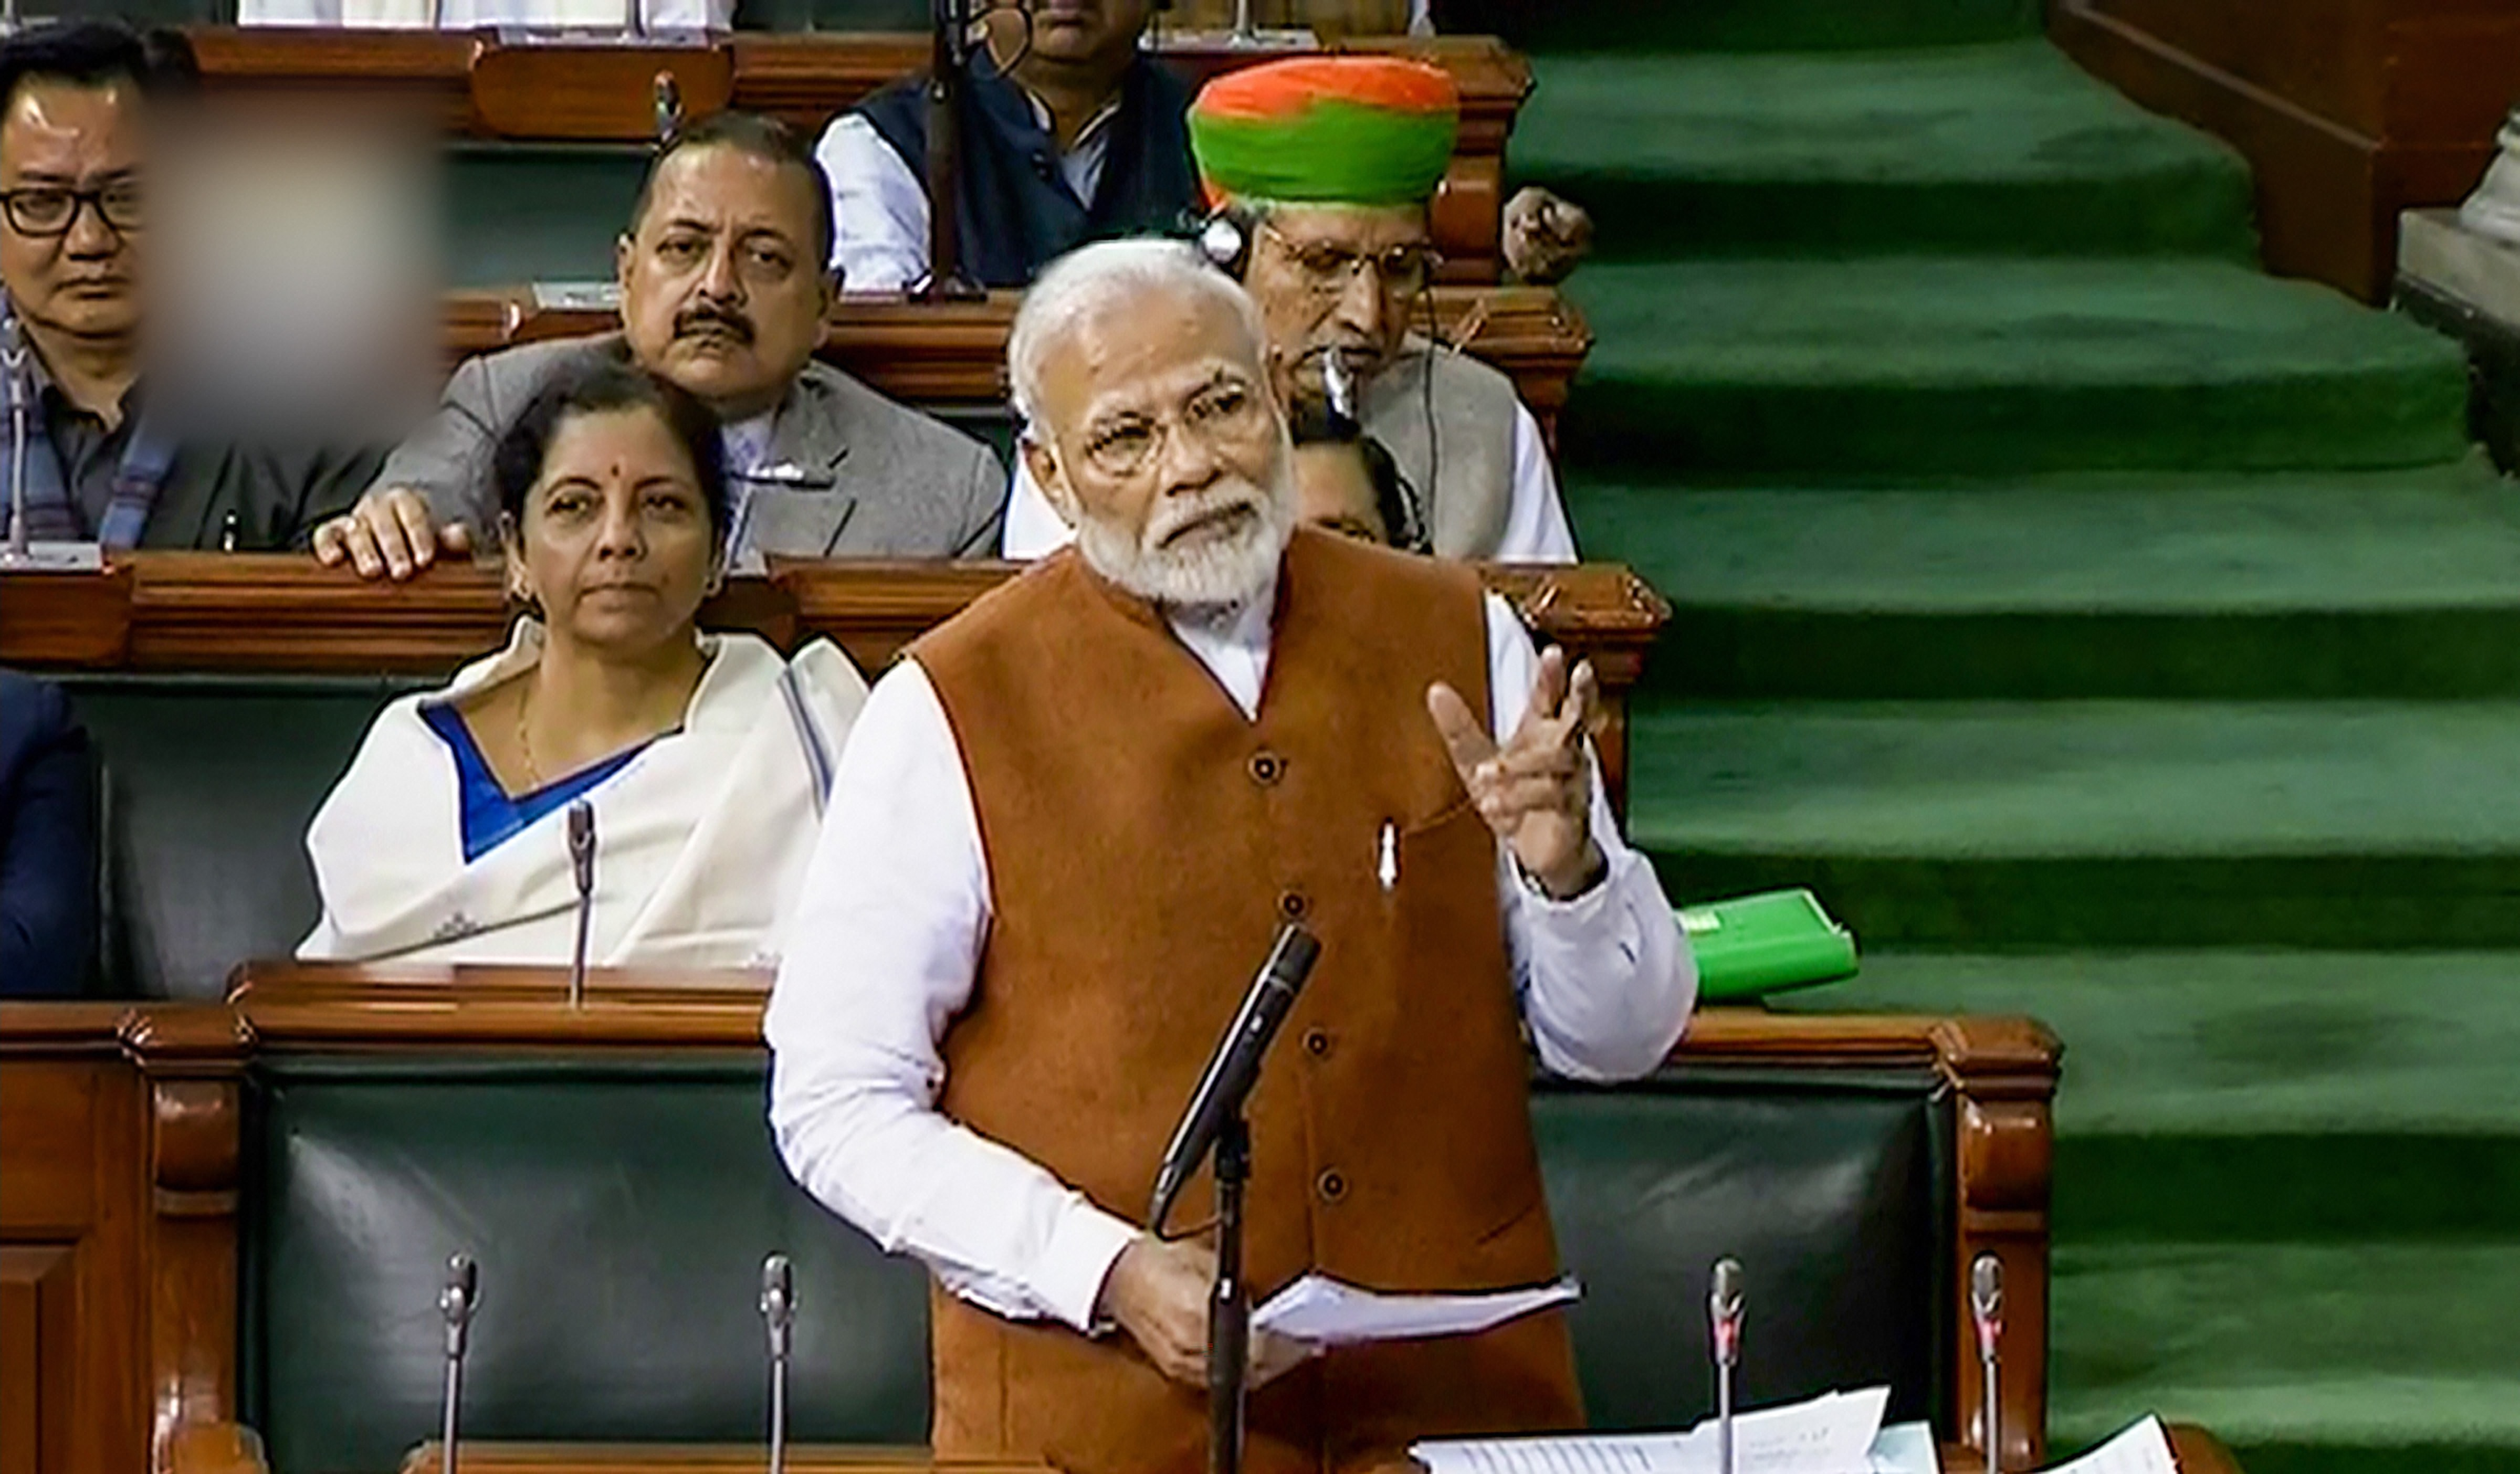 Prime Minister Narendra Modi speaks in the Lok Sabha during the ongoing Budget Session of Parliament, in New Delhi, Thursday, February 6, 2020